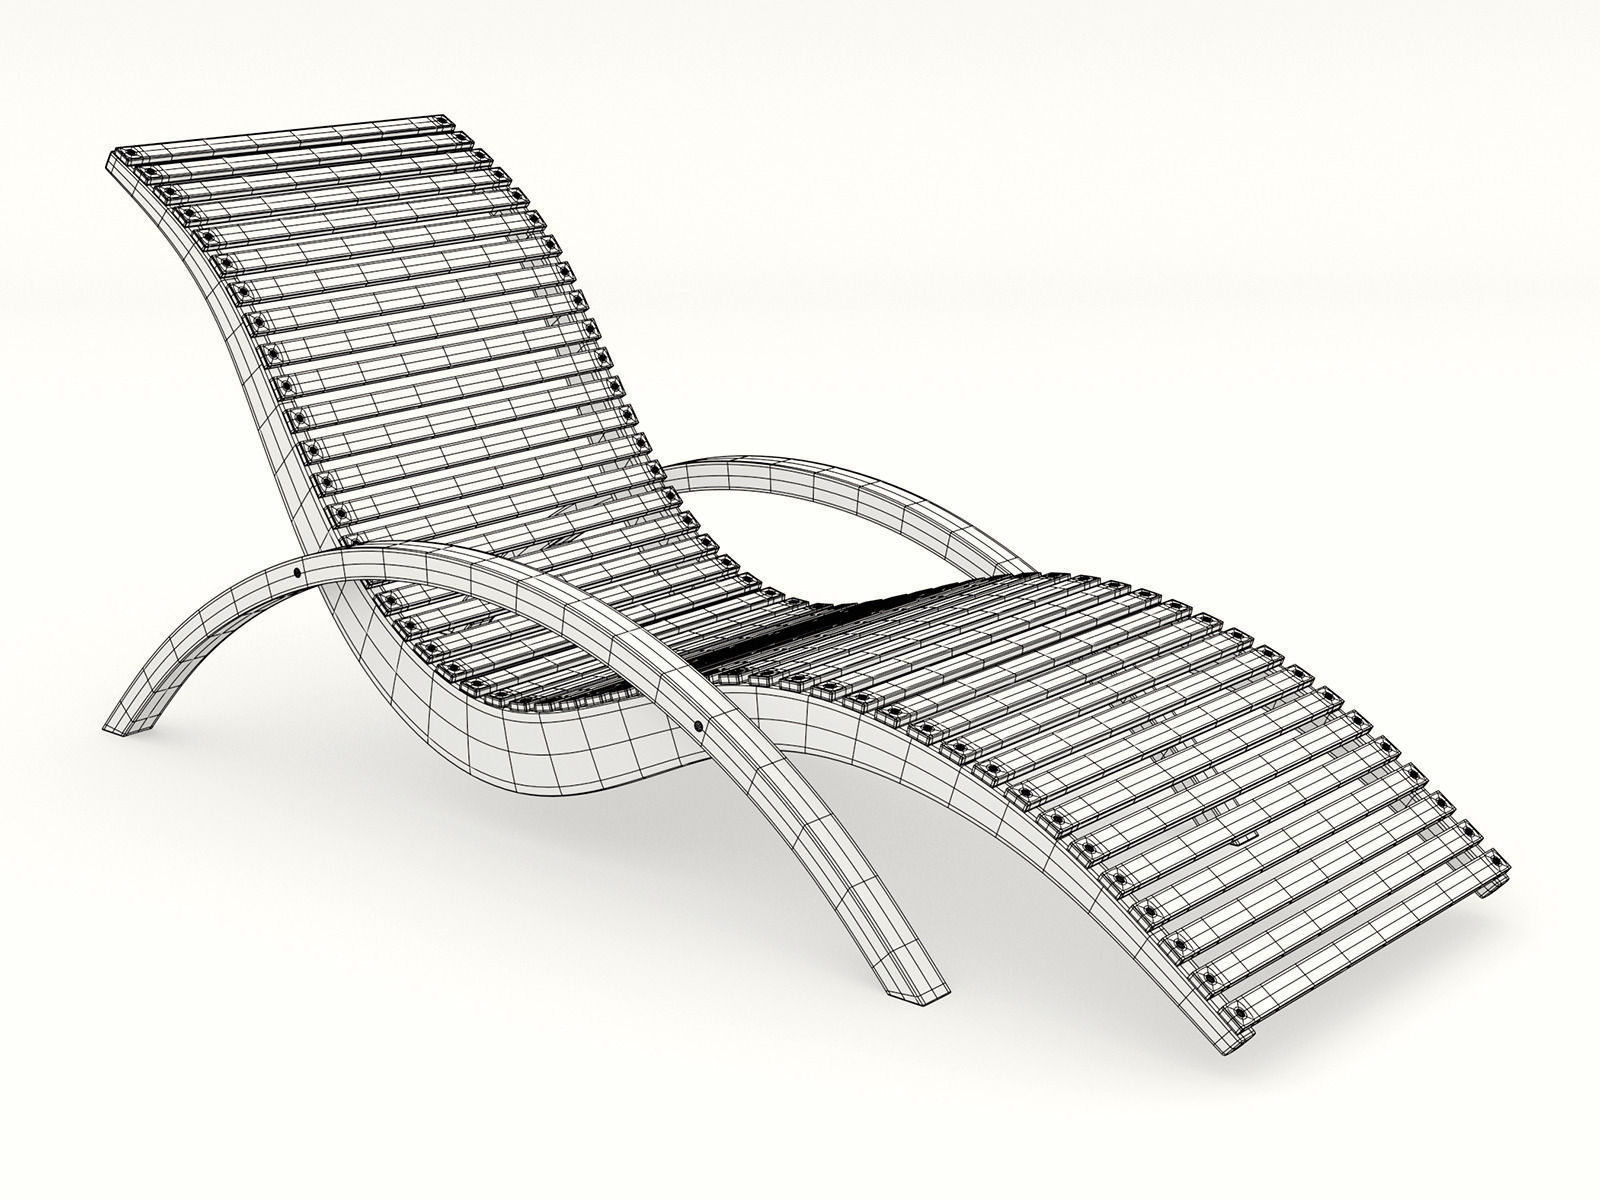 Lounge chair outdoor wood patio deck 3d model obj mtl cgtrader com -  Lounge Chair Outdoor Wood Patio Deck 3d Model Obj Dxf Mtl 3